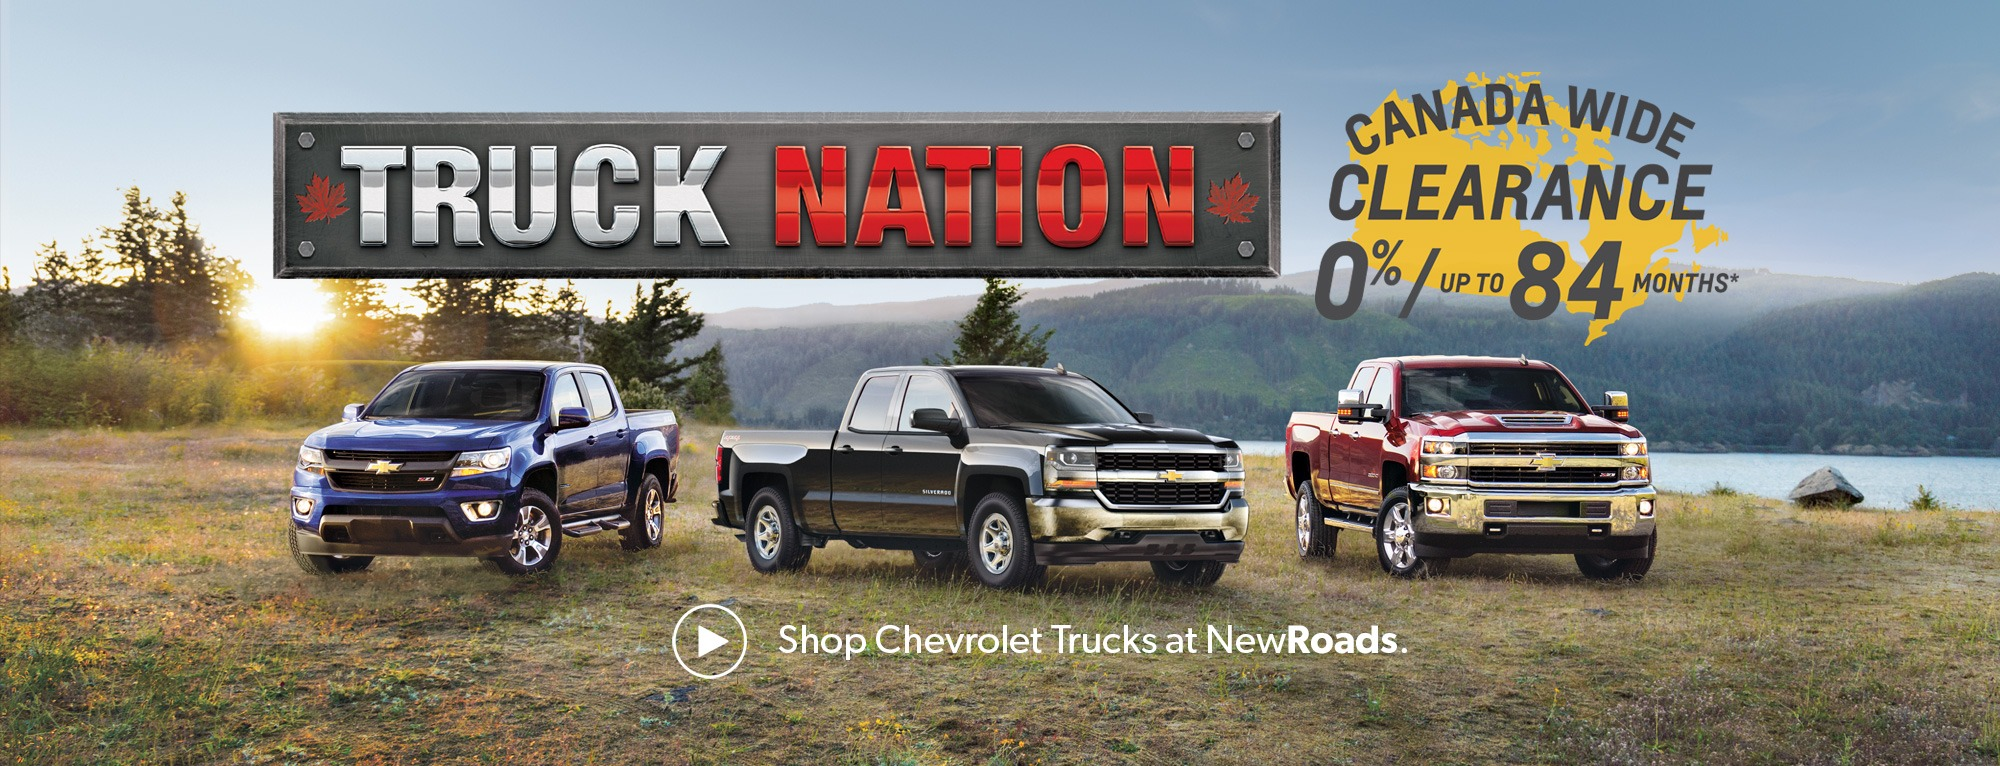 GM Truck Nation Clearance